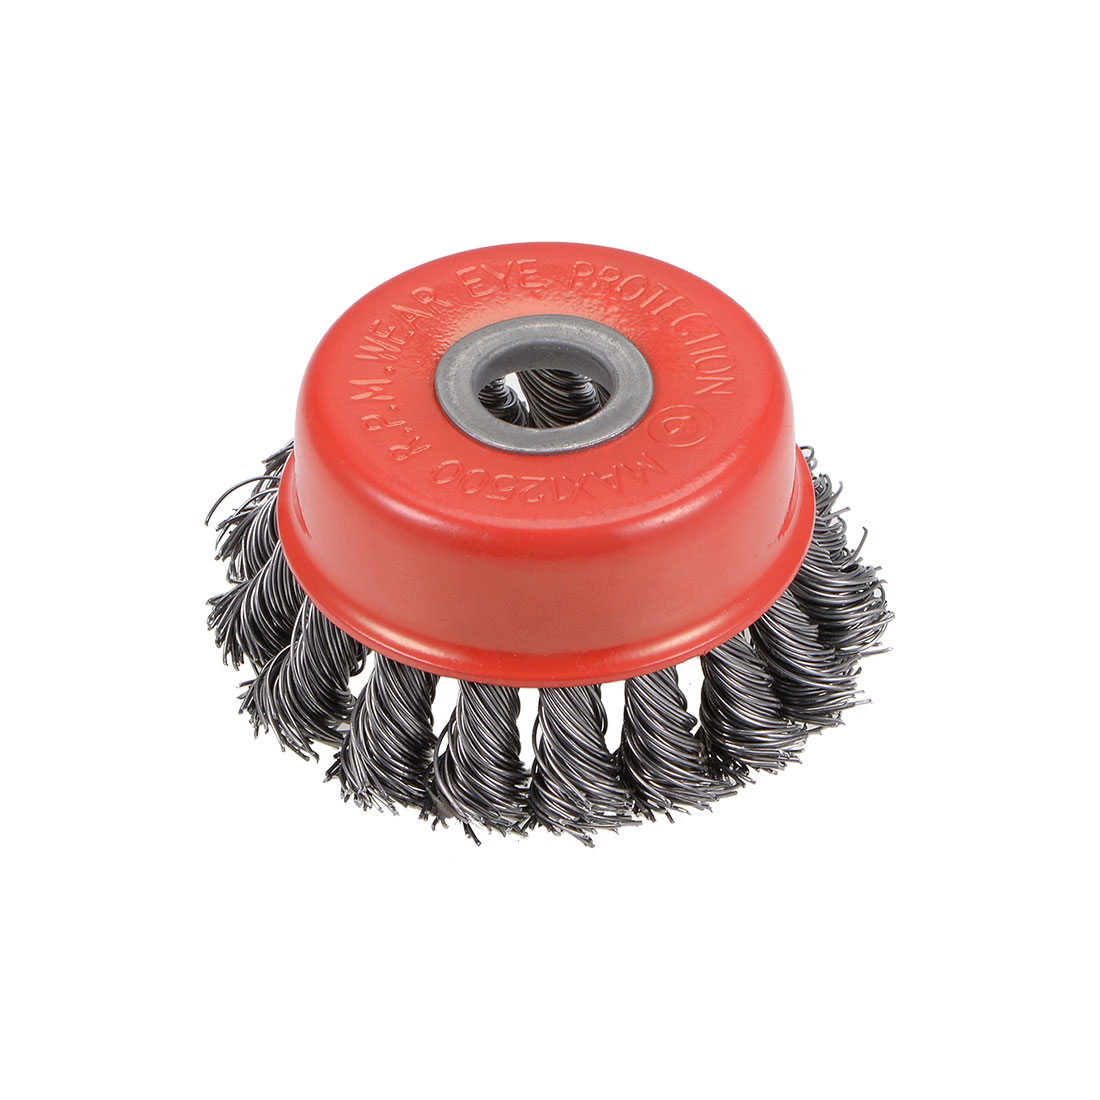 3-Inch Wire Cup Brush Twist Knotted Crimped Steel with 15mm Arbor Hole